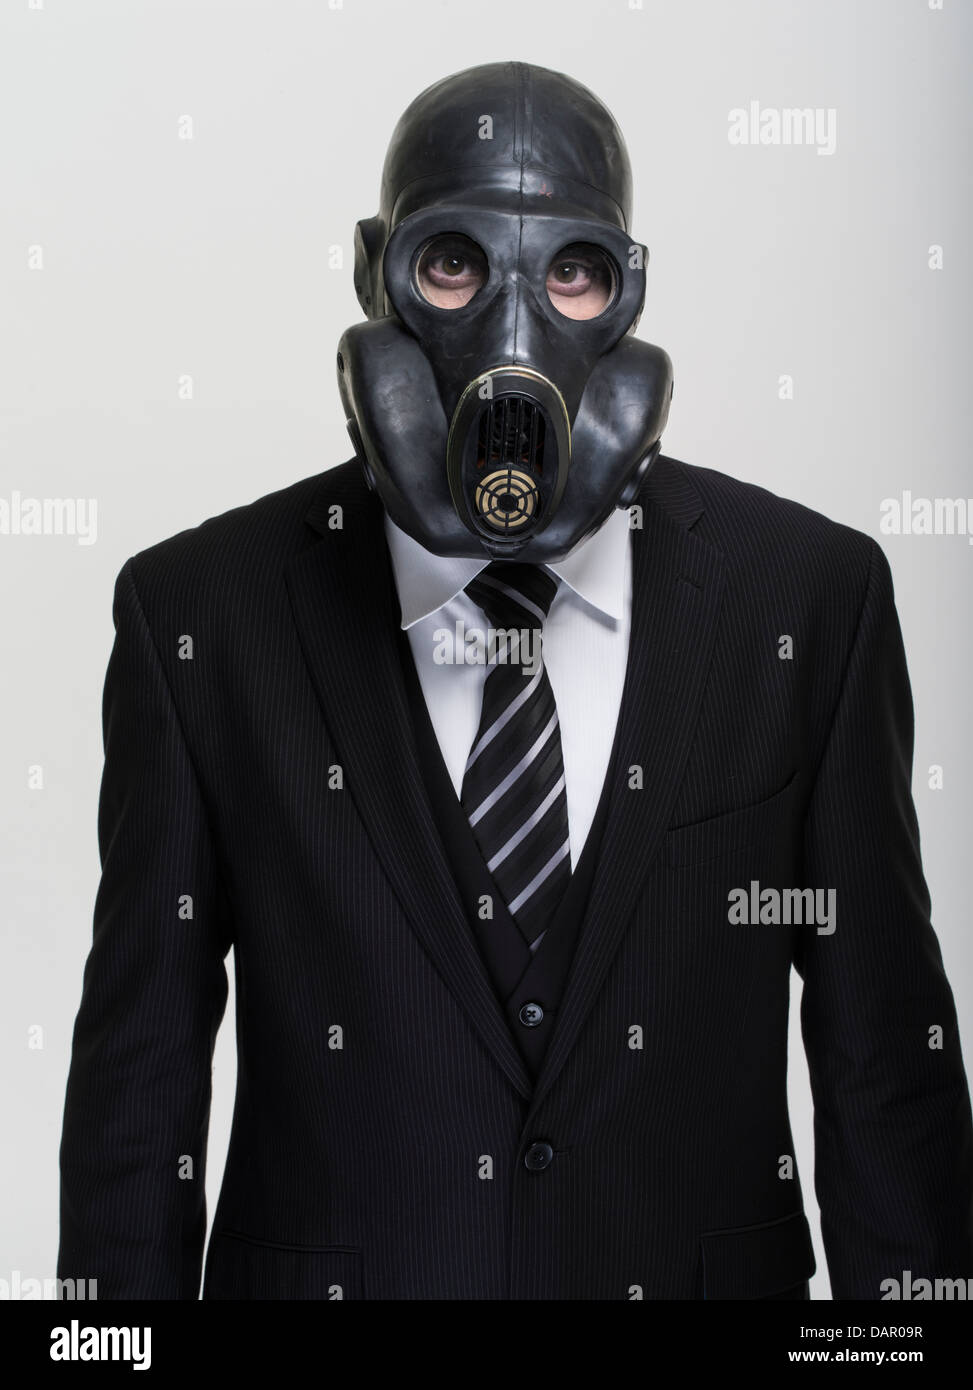 Businessman in suit and tie wearing gas mask. Toxic banking. - Stock Image